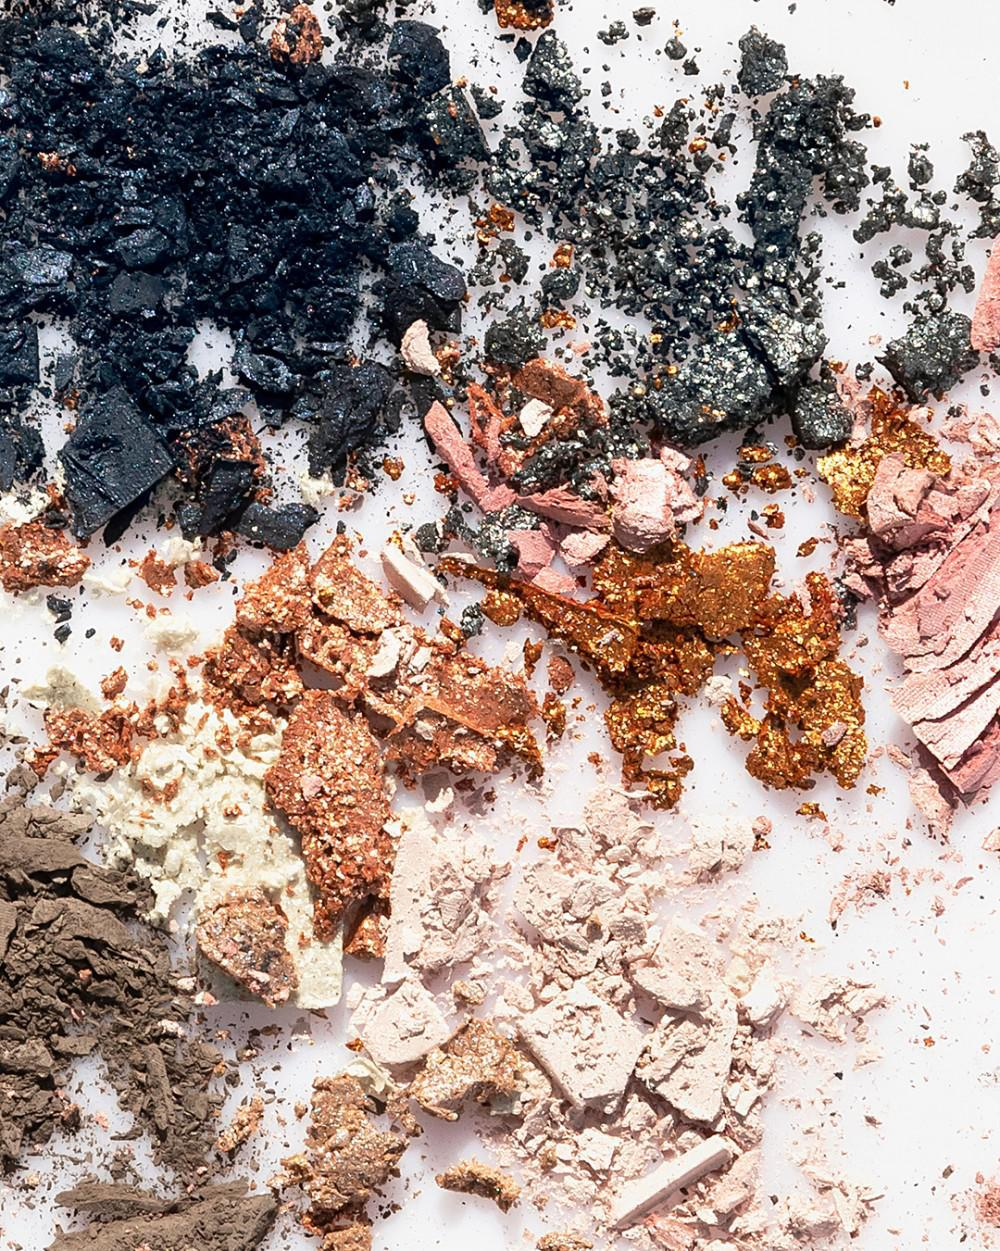 What is Mica and where does it come from?